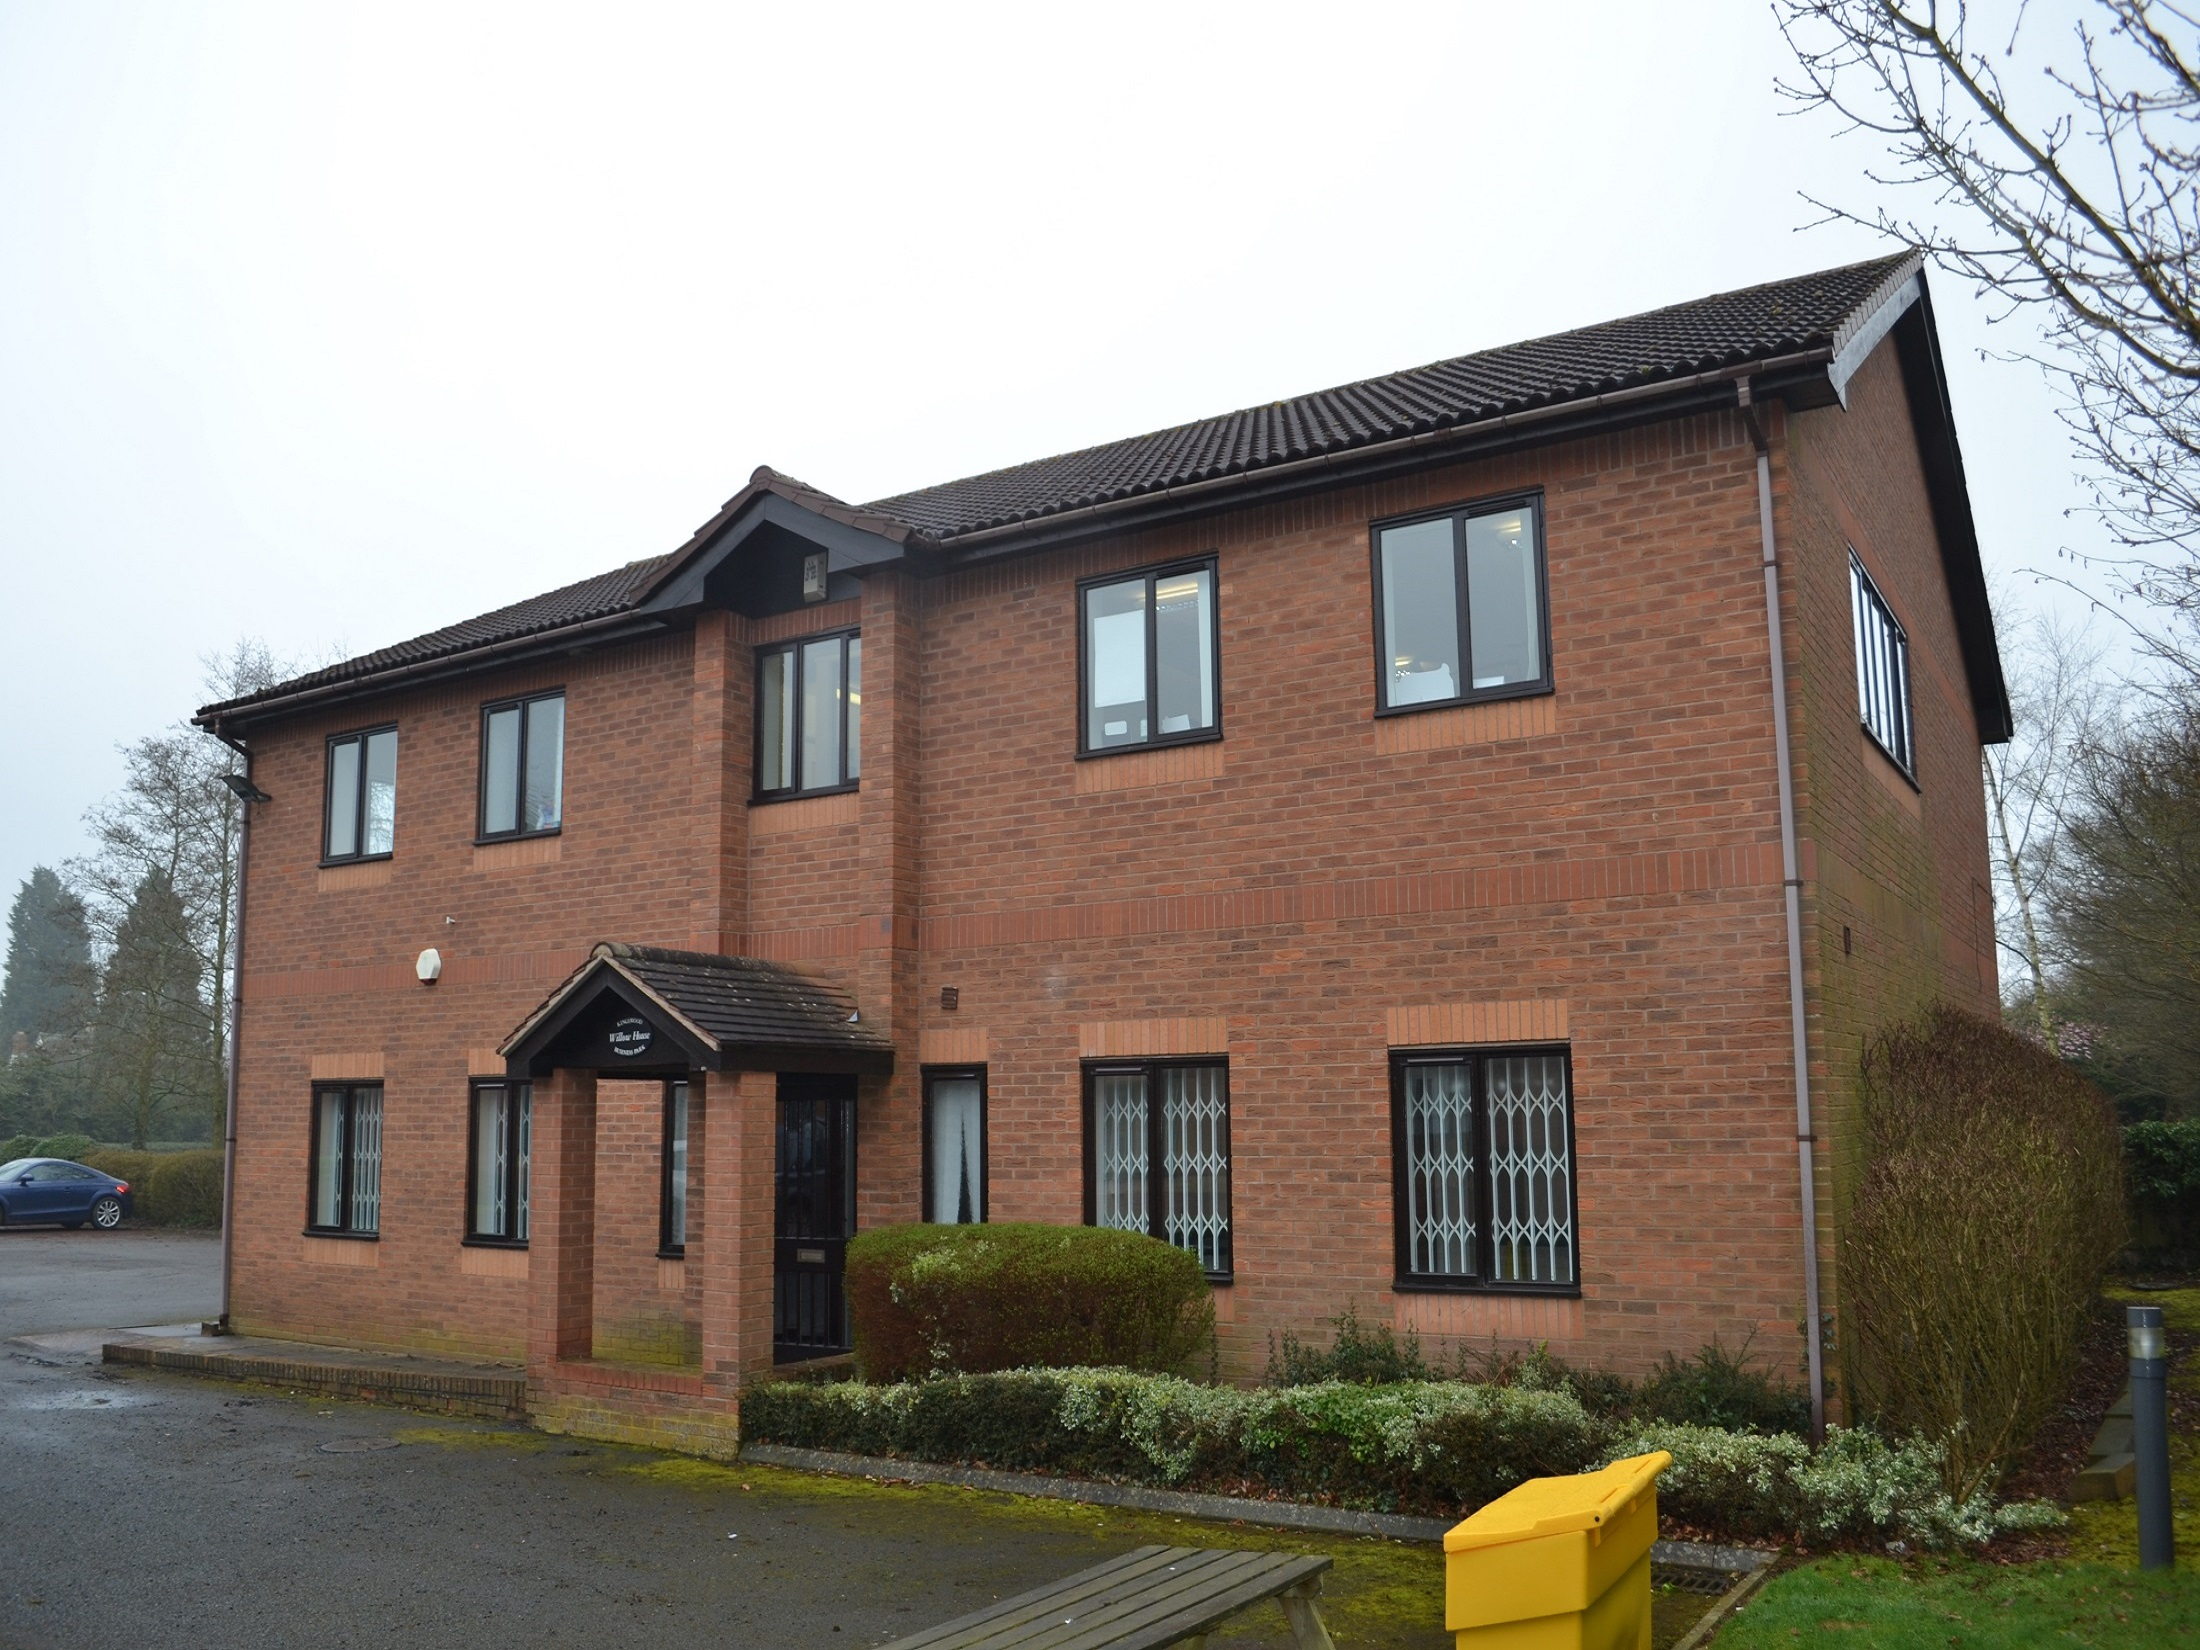 Willow House (Suite 1) - Kingswood Business Park, Holyhead Road, Albrighton, Wolverhampton, WV7 3AU